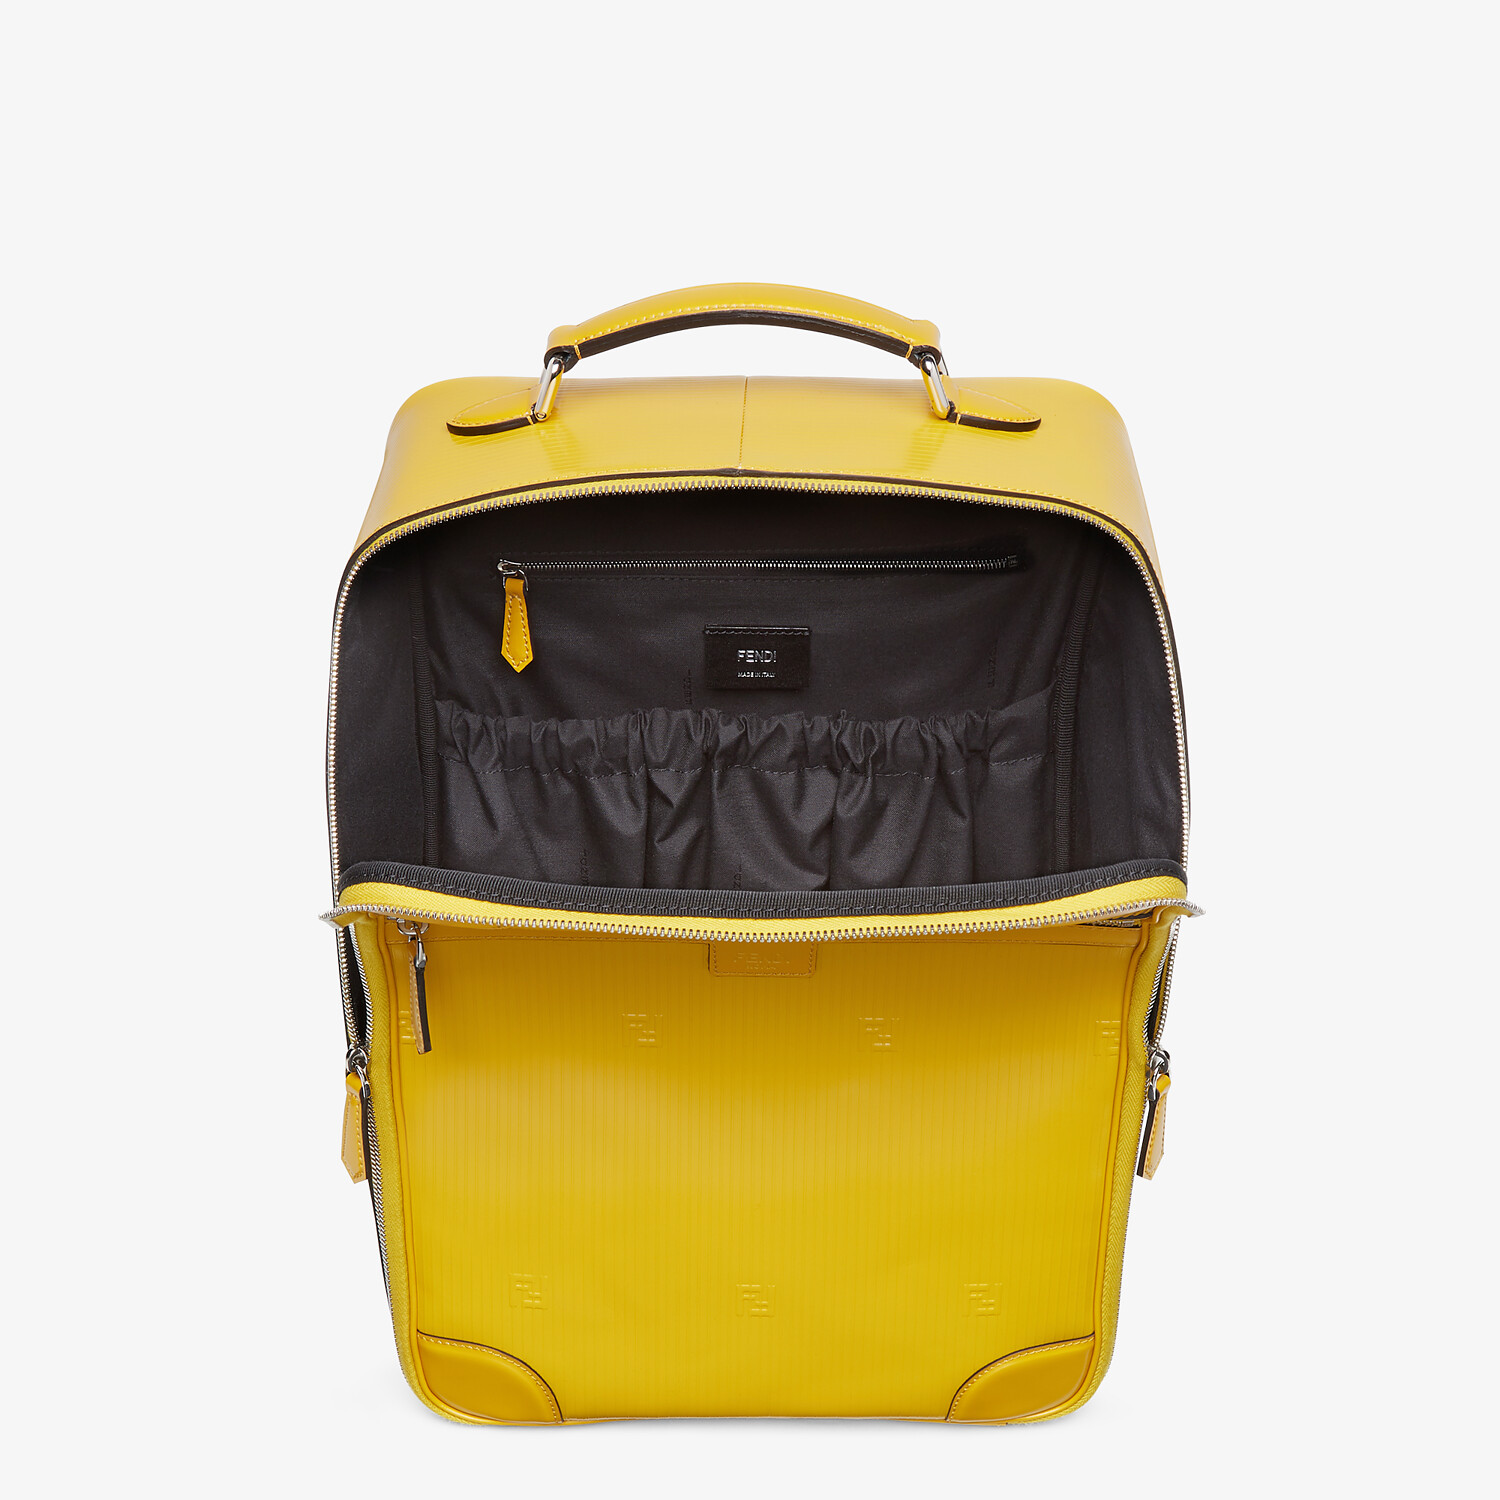 FENDI TRAVEL BACKPACK - Yellow leather backpack - view 4 detail